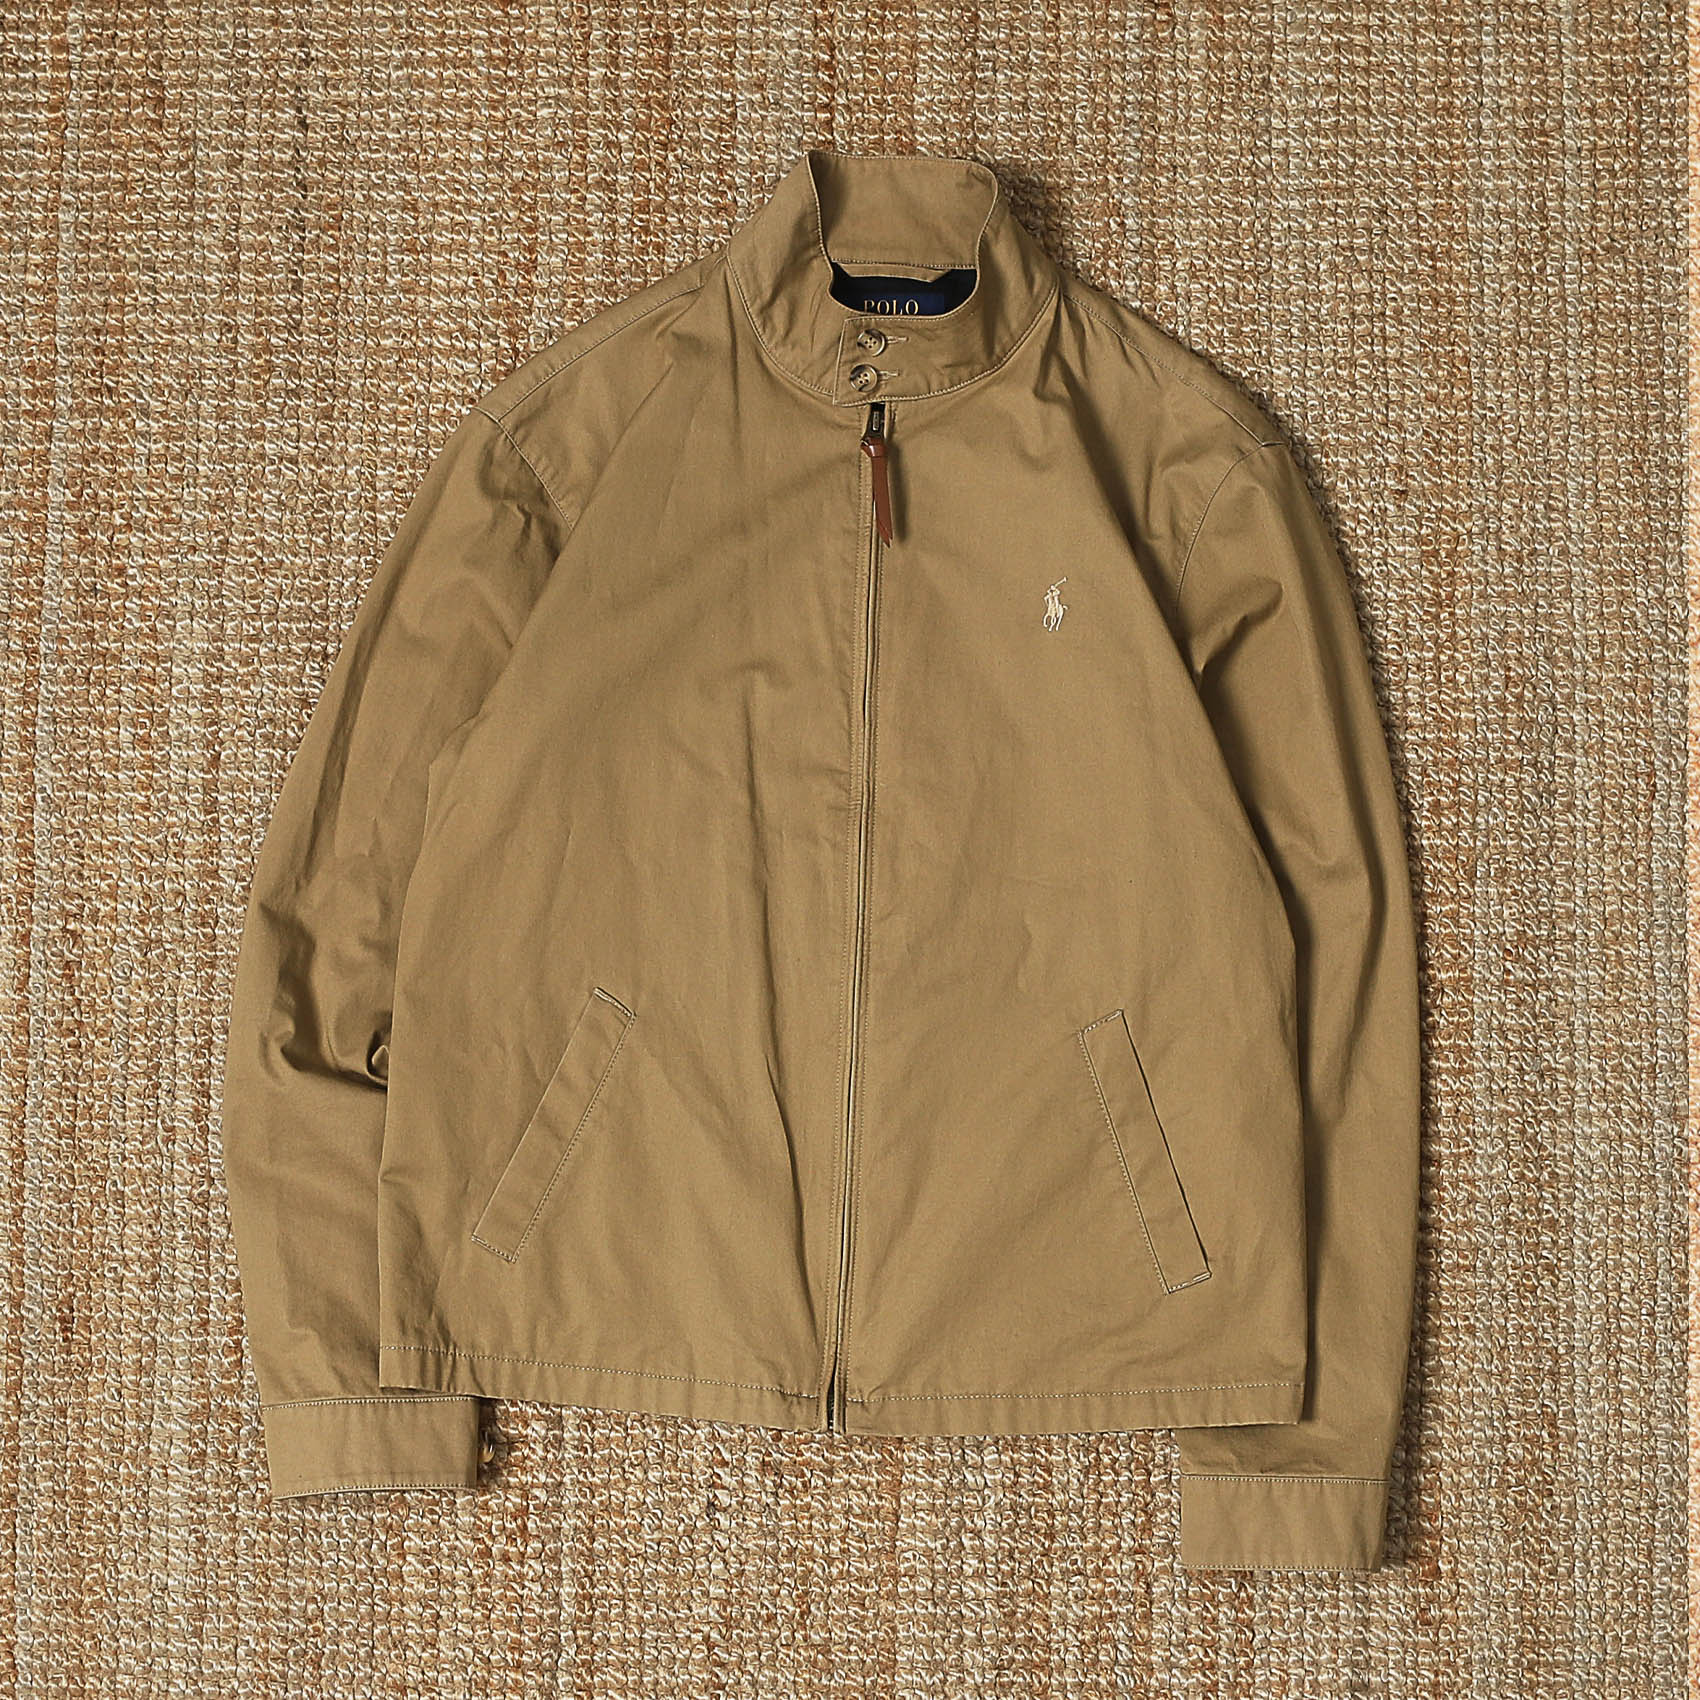 POLO RALPH LAUREN HARRINGTON JACKET - BEIGE